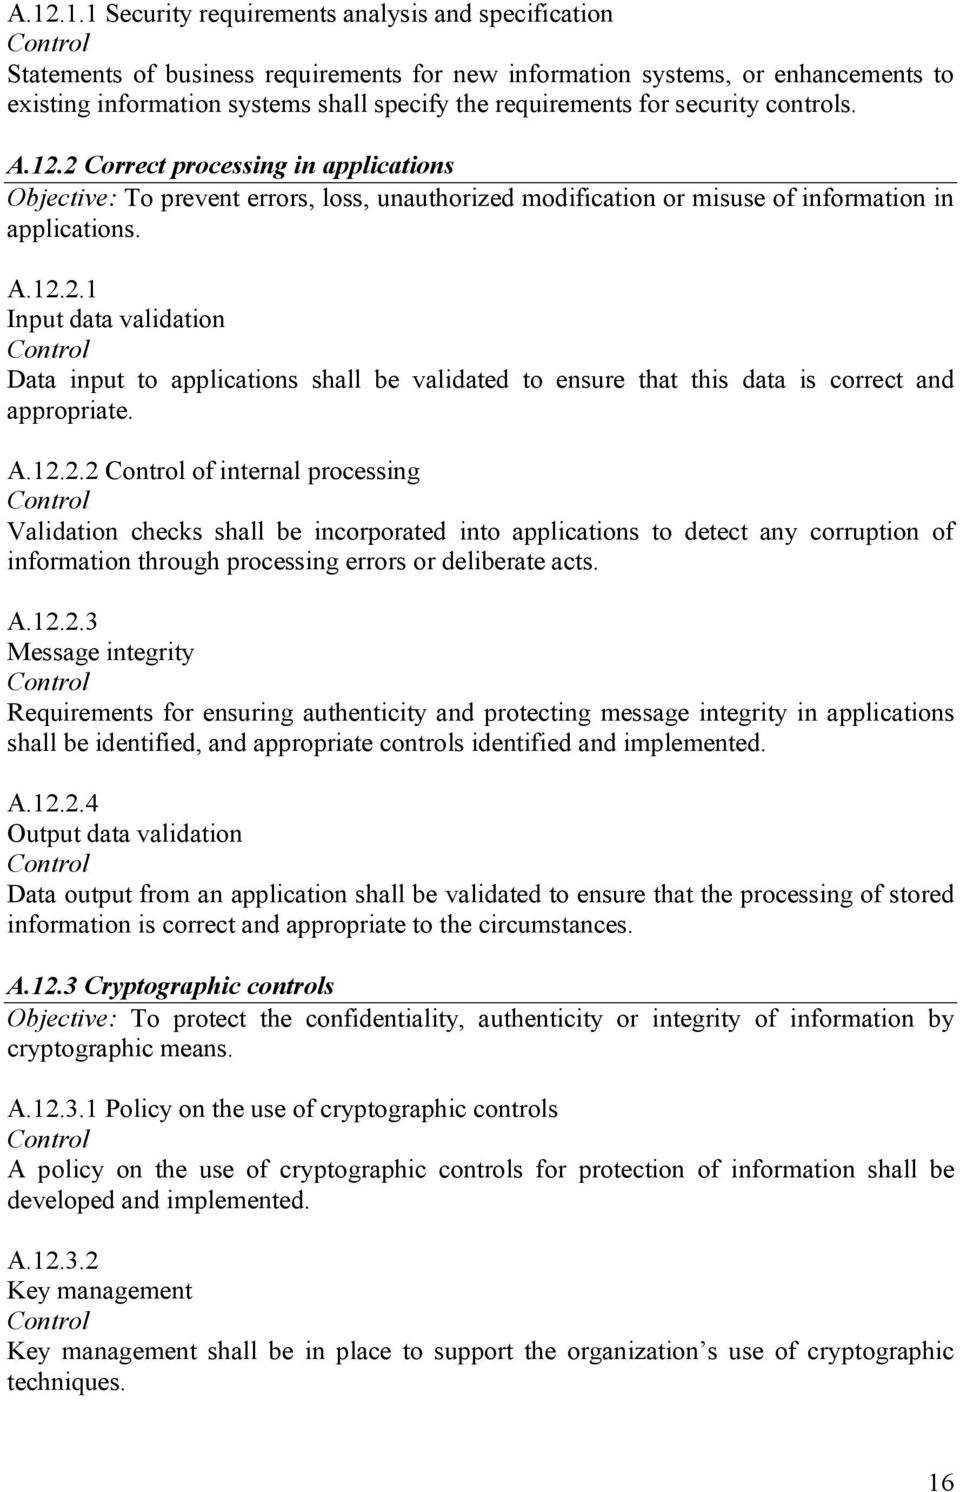 A.12.2.2 of internal processing Validation checks shall be incorporated into applications to detect any corruption of information through processing errors or deliberate acts. A.12.2.3 Message integrity Requirements for ensuring authenticity and protecting message integrity in applications shall be identified, and appropriate controls identified and implemented.